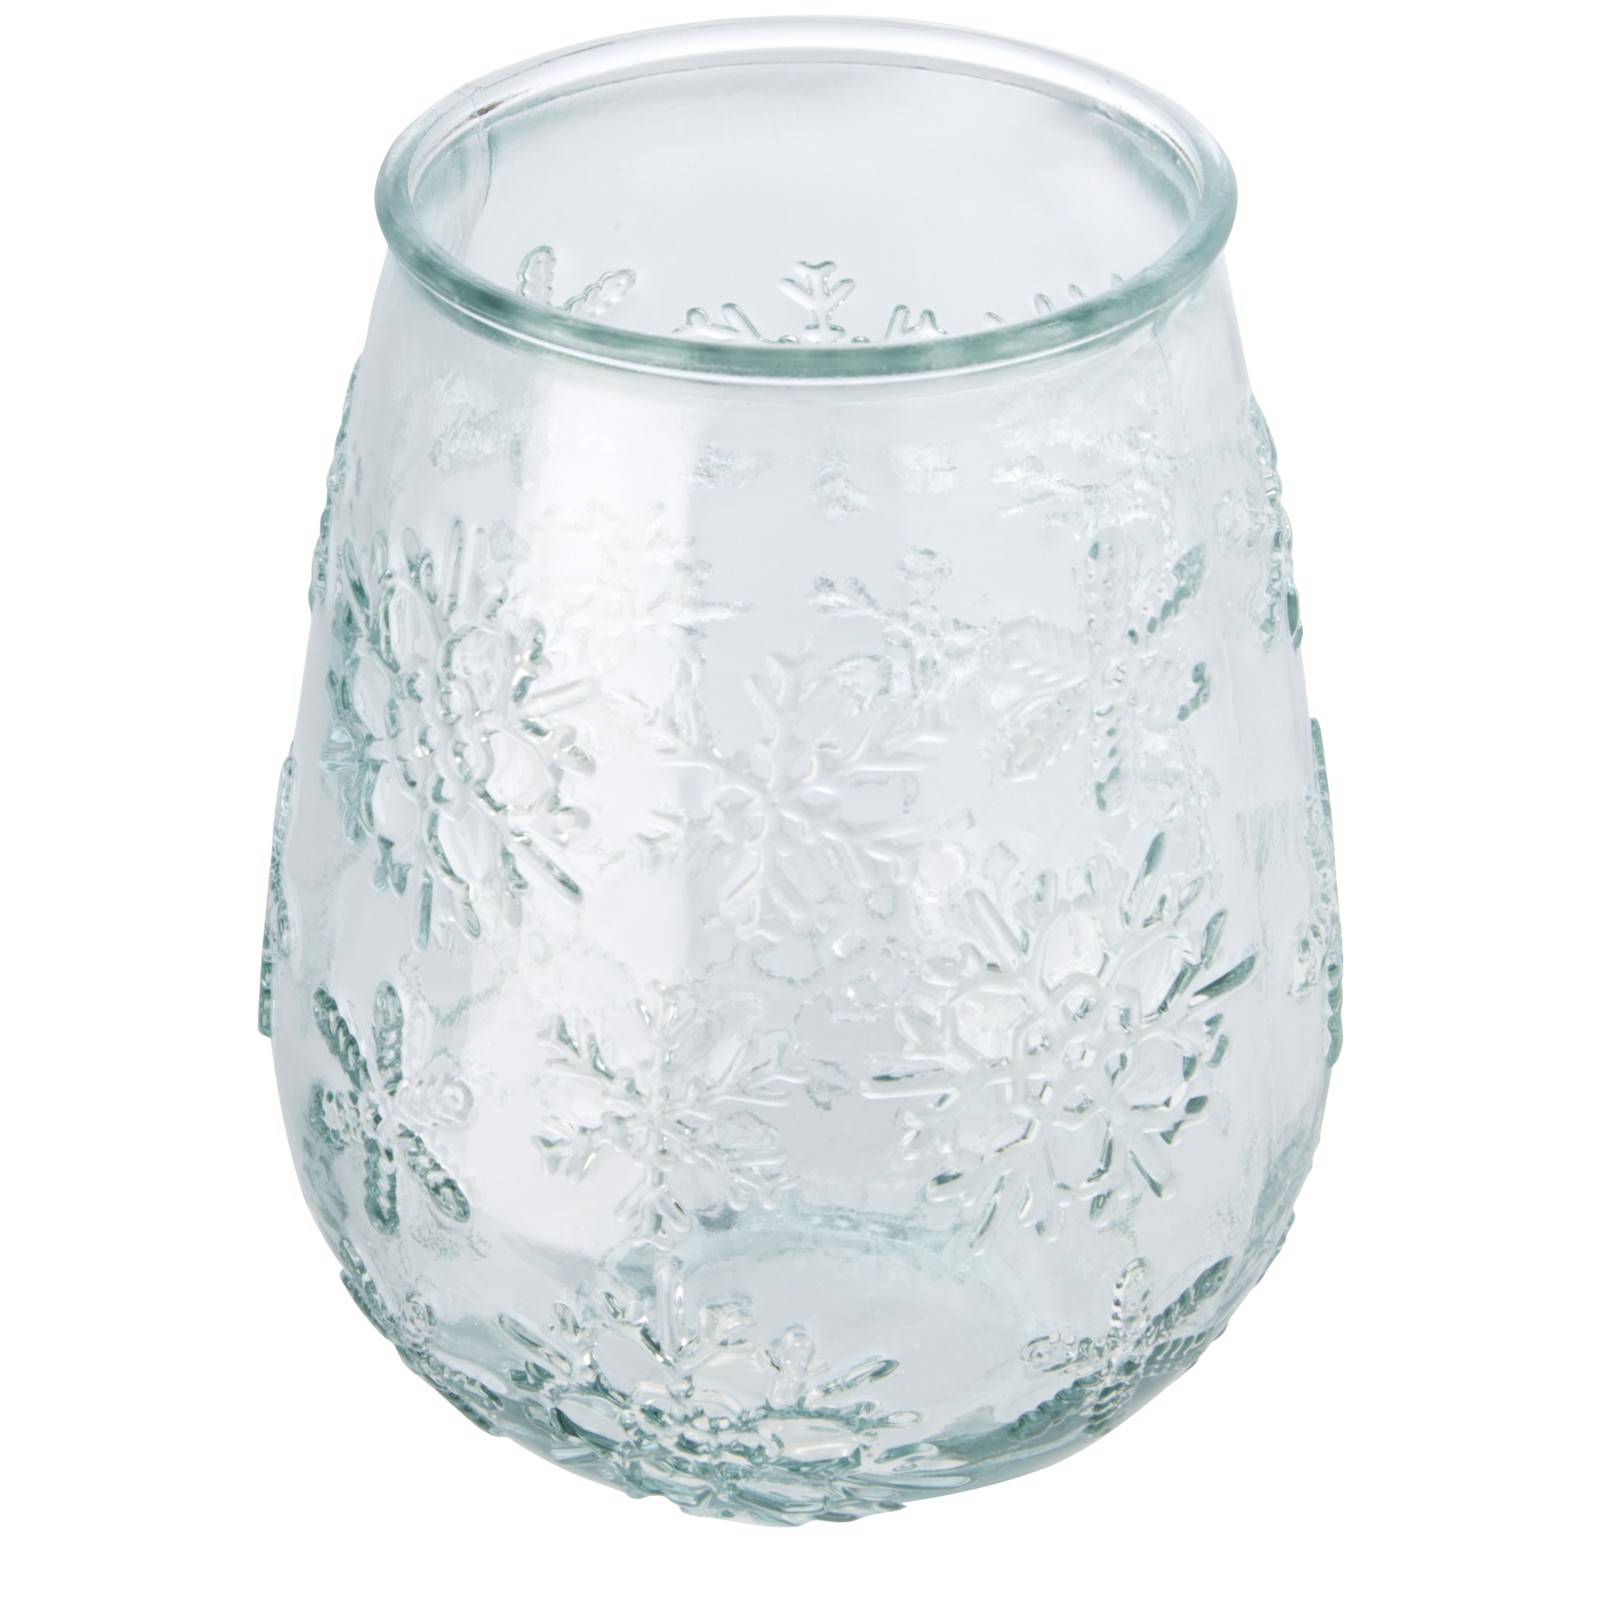 Faro recycled glass tealight holder - Transparent Clear